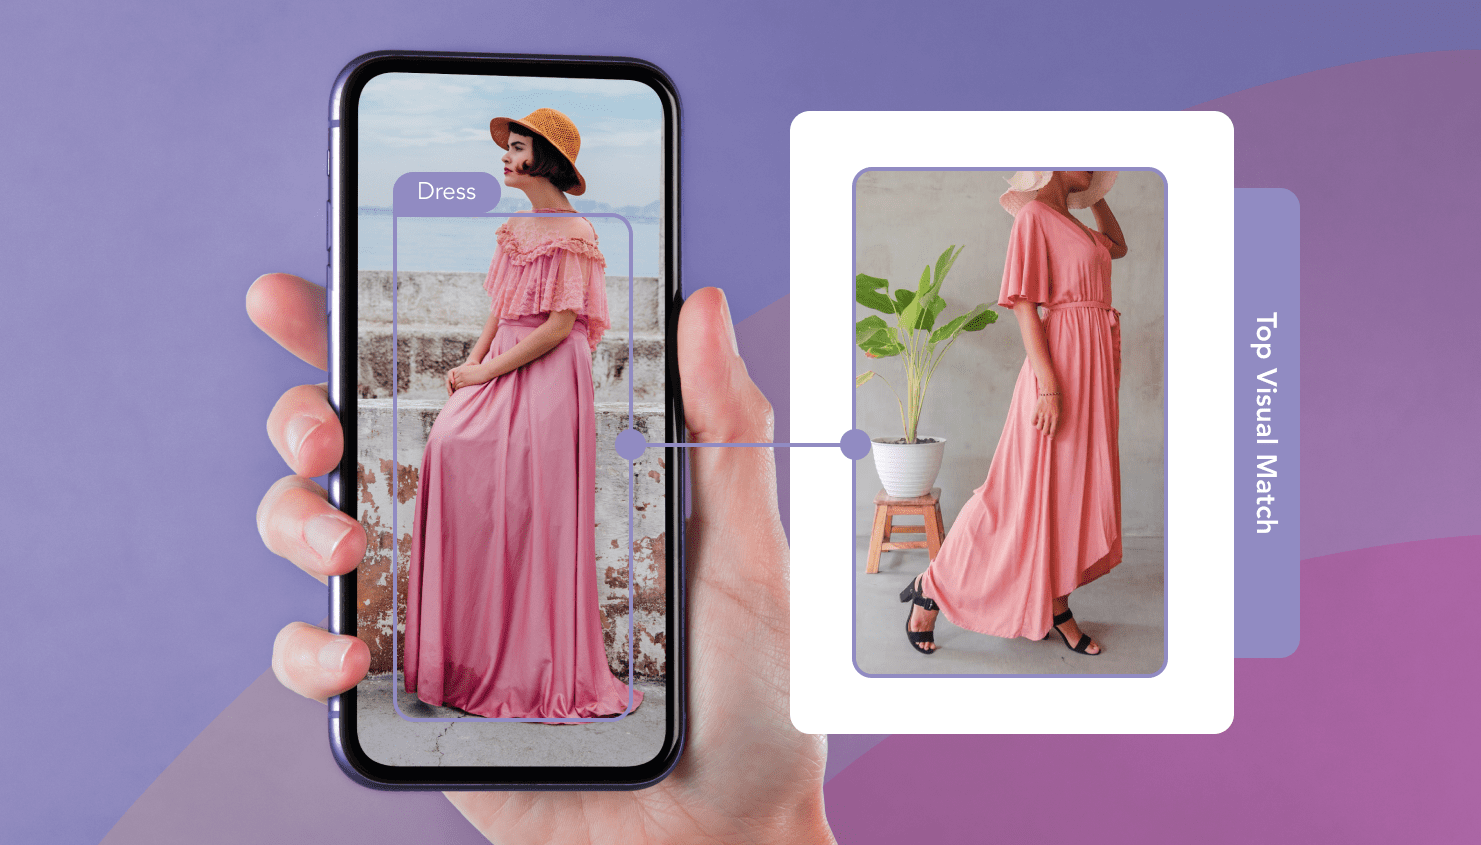 Girl holding a phone looking at a pink dress and a visual match of the pink dress on the right.